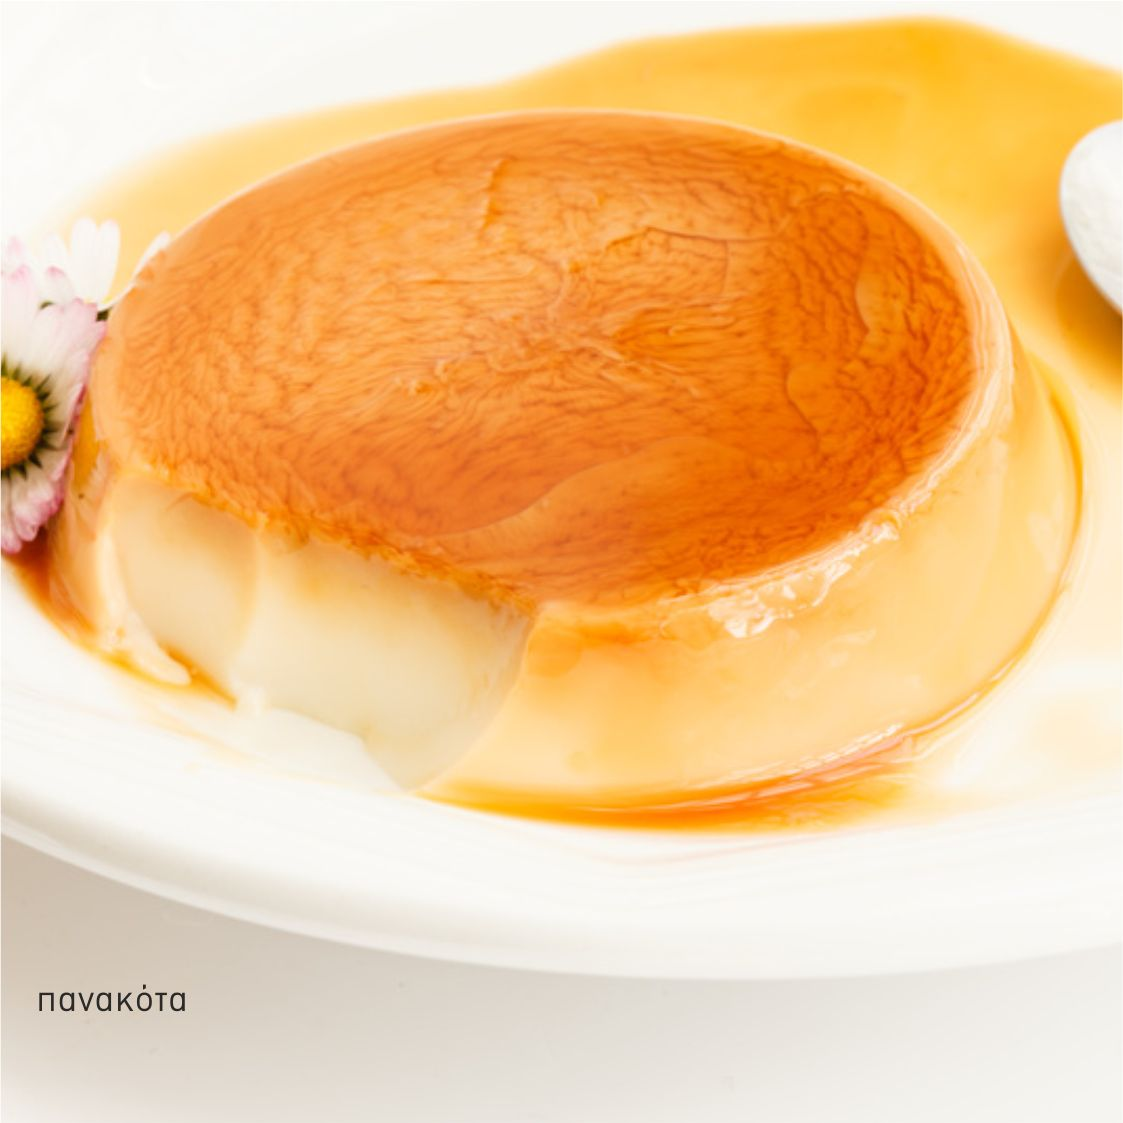 panacotta with caramel syrup